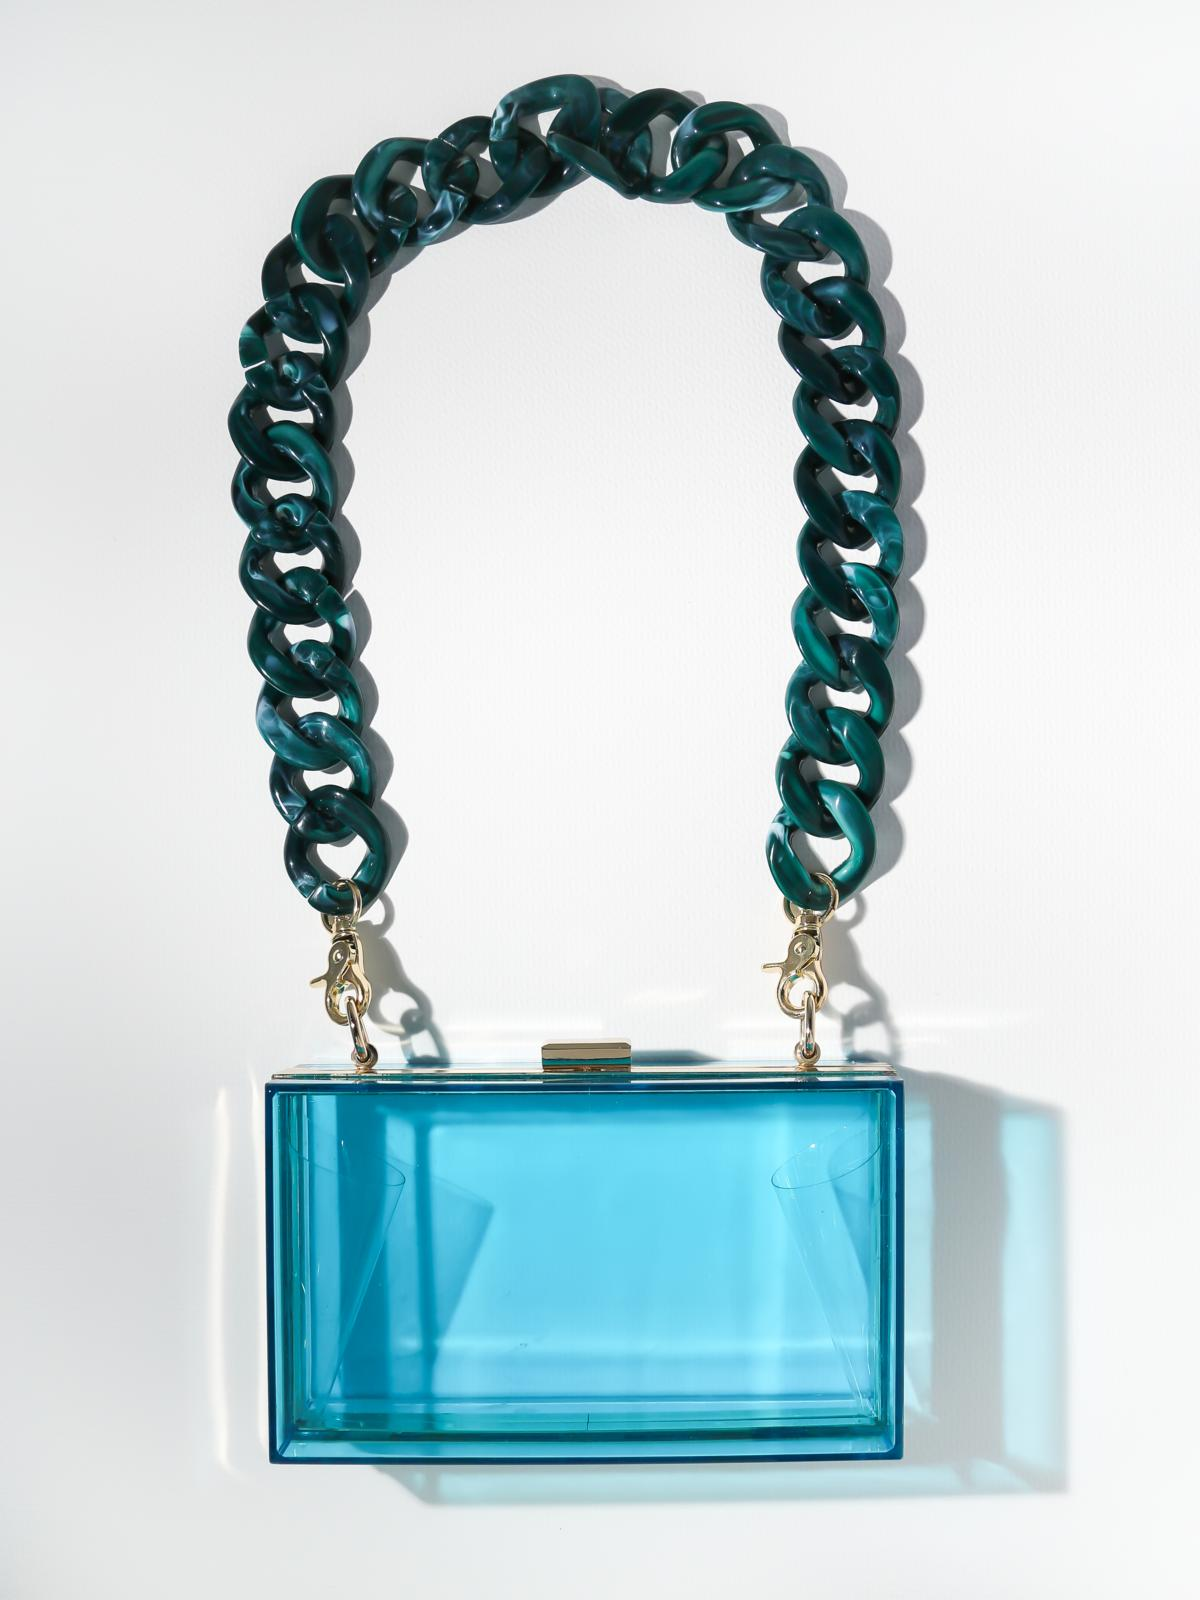 Accessories The Devo Clutch - Teal Vanessa Mooney